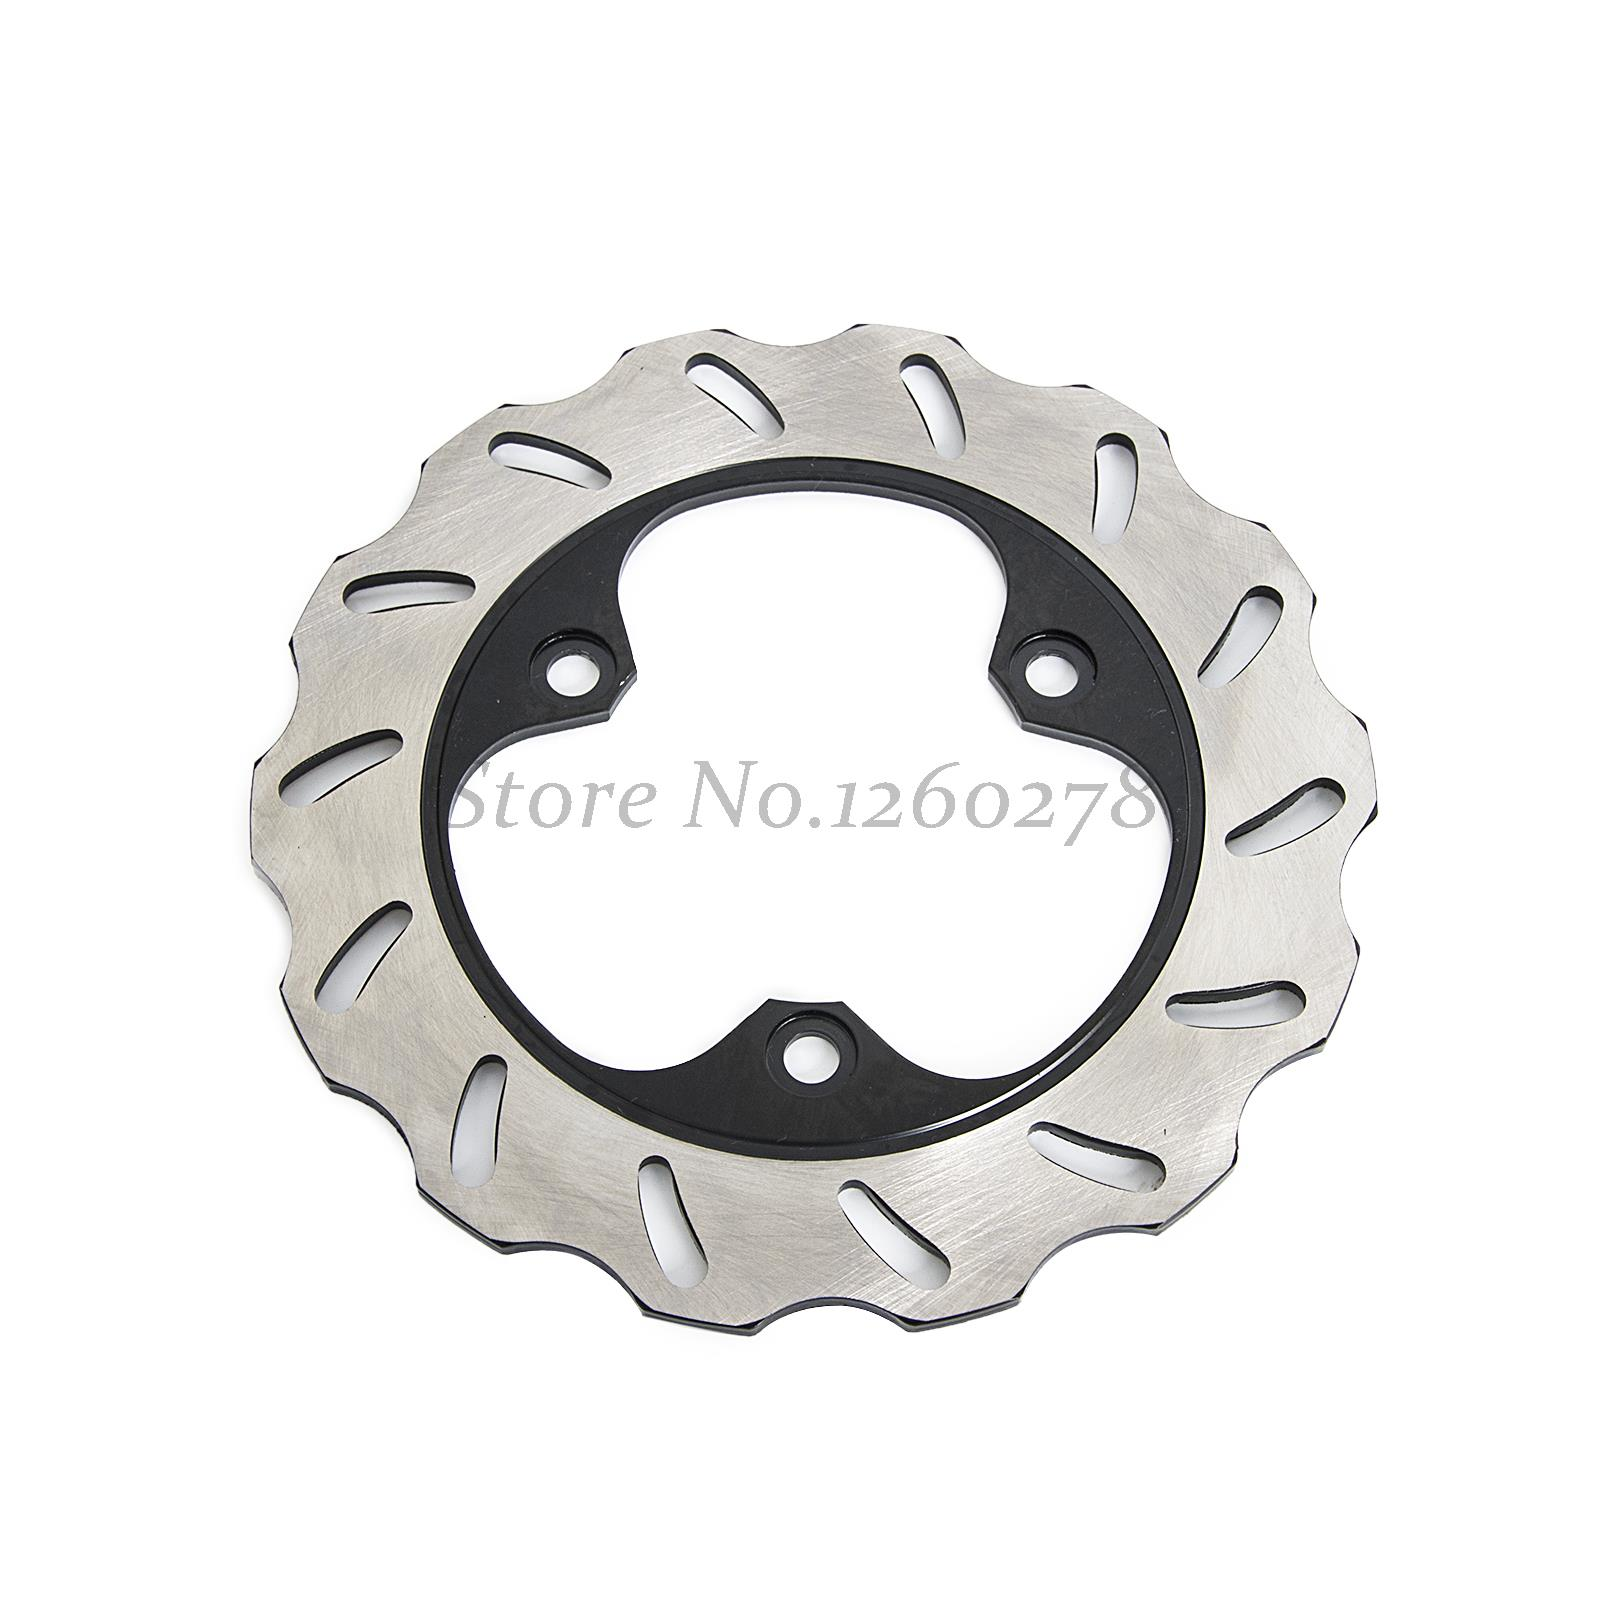 Motorcycle Steel Rear Brake Disc For Honda CBR 250 RH MC17 87